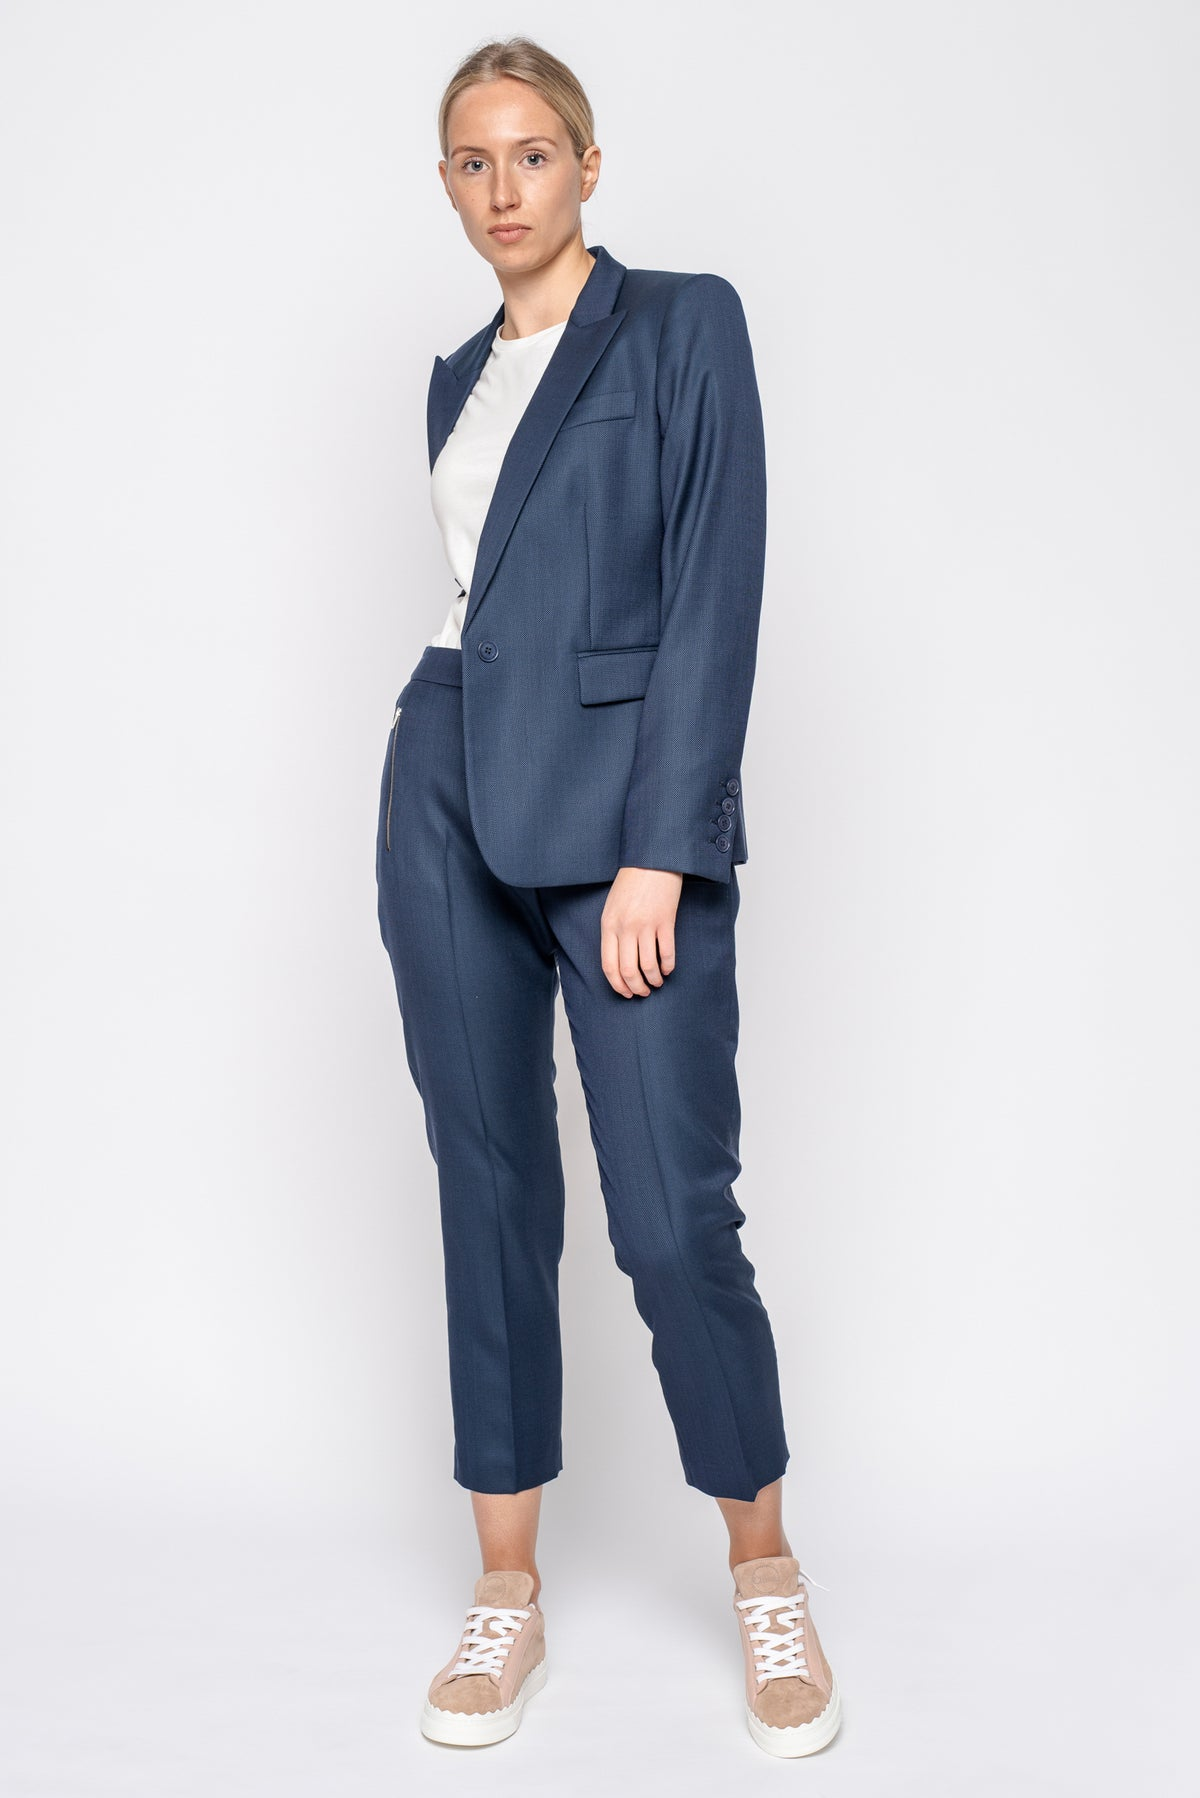 Stella McCartney Washed Blue Tailored Pant with Silver Zips